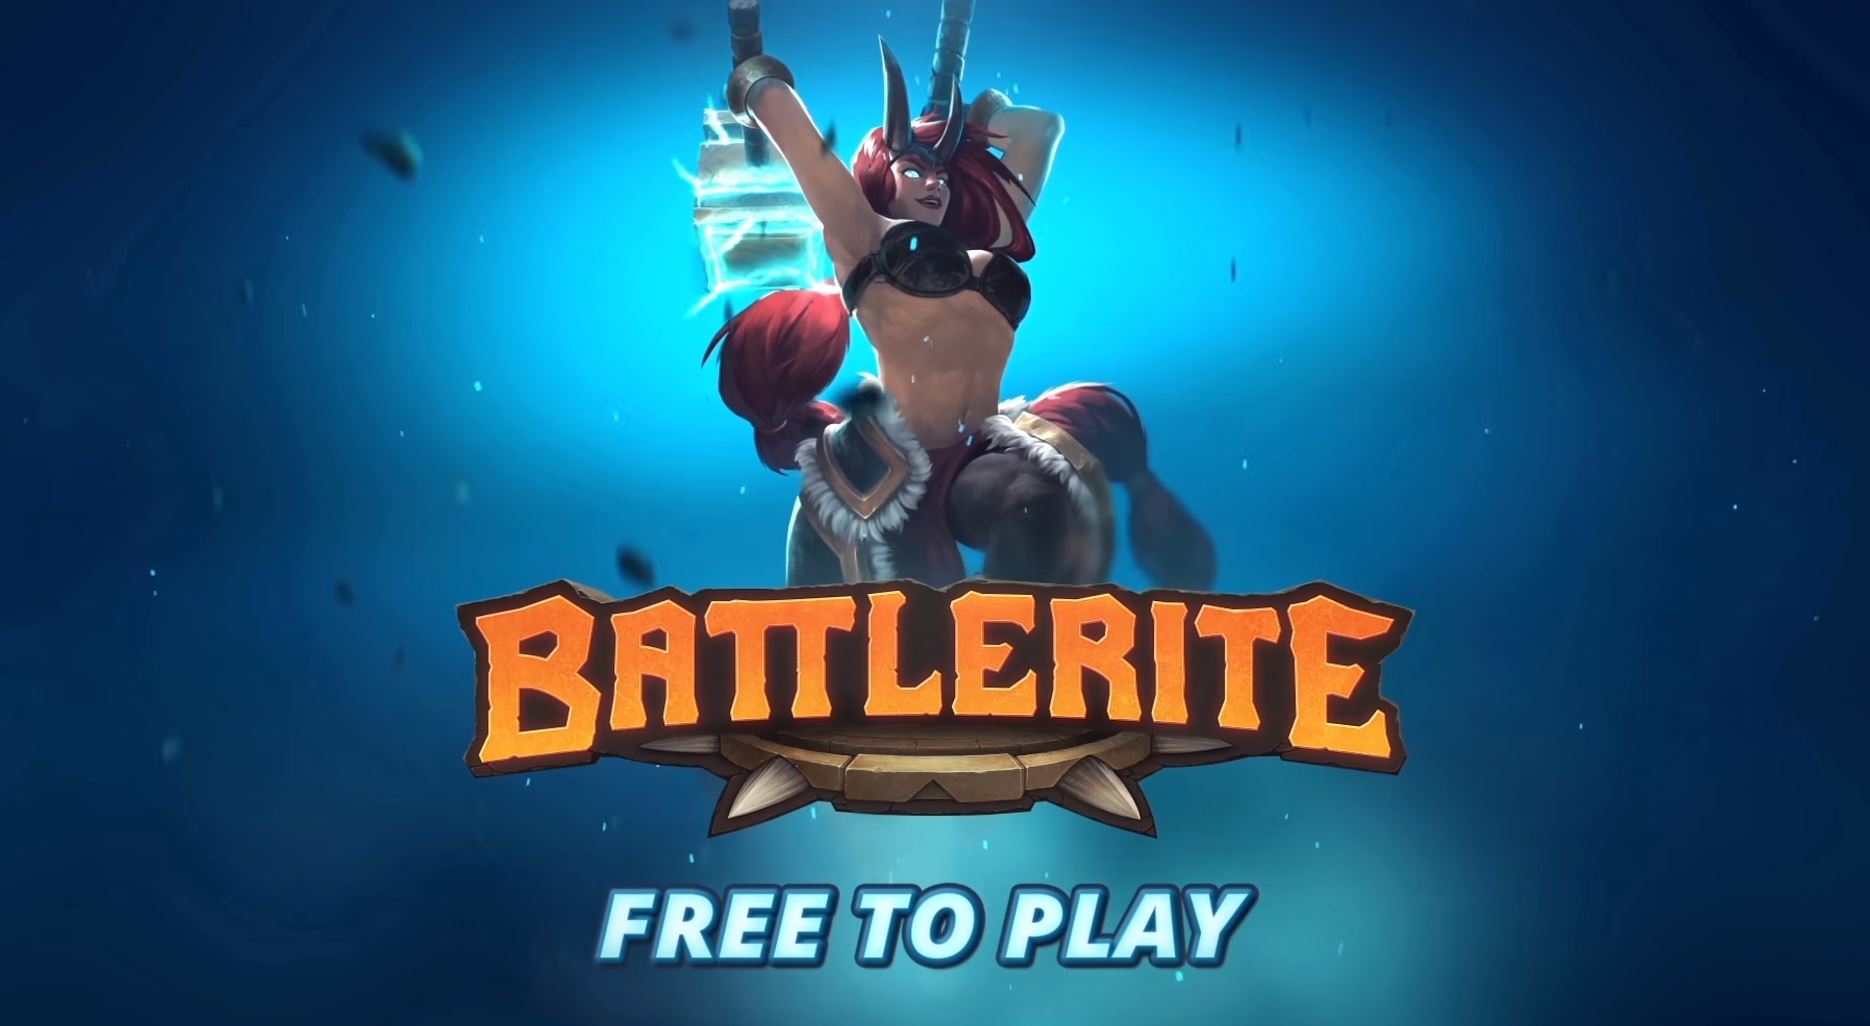 Photo of Battlerite Leaves Early Access, Becomes a Free to Play Game